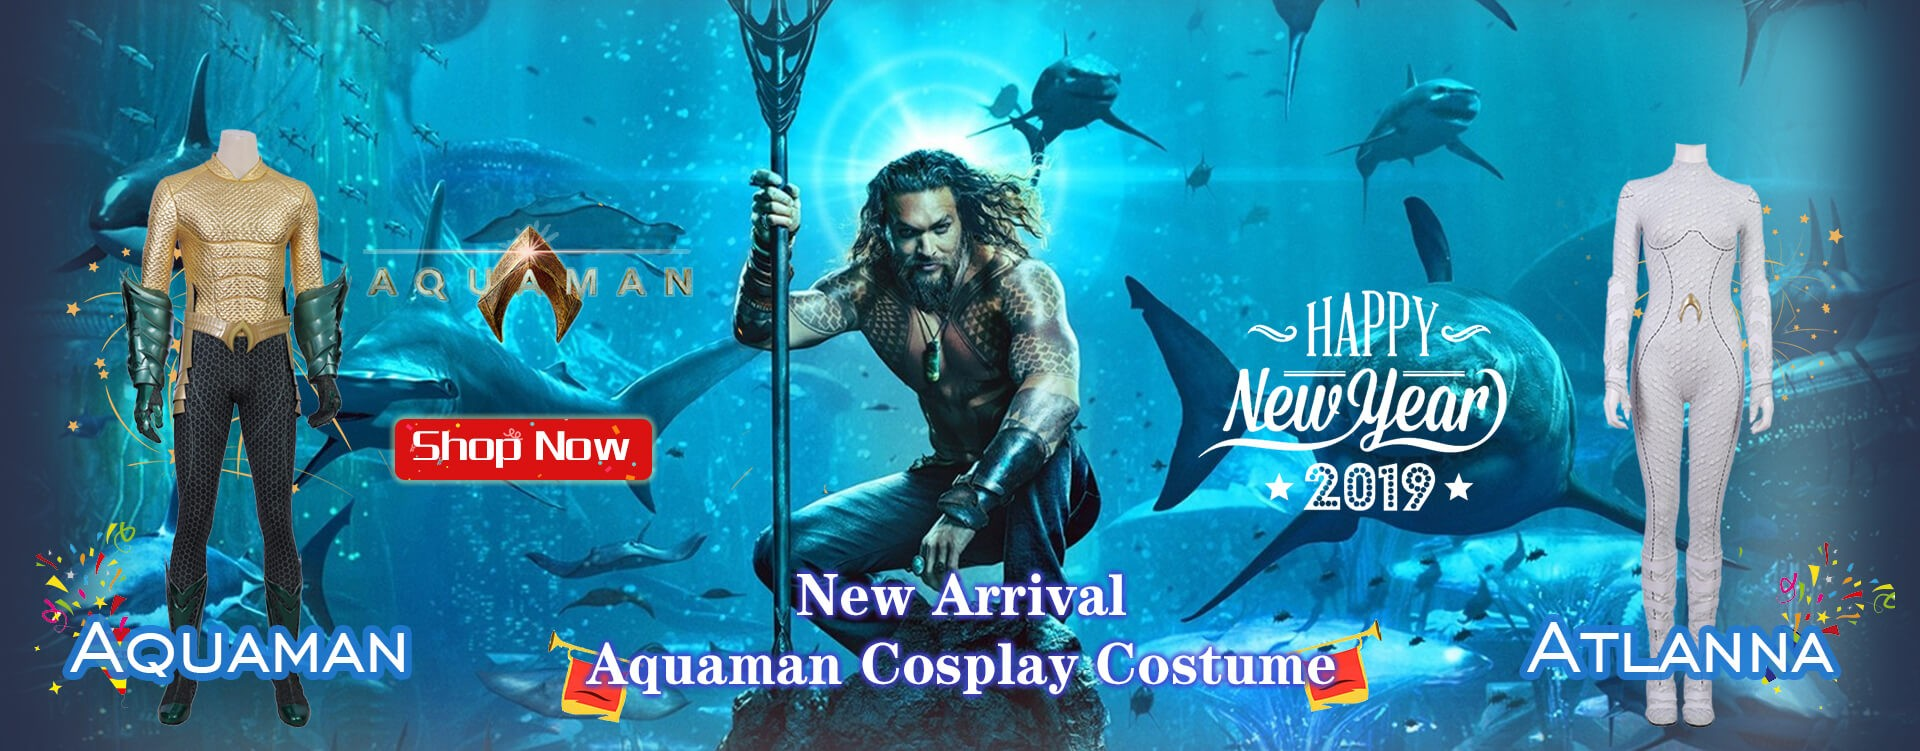 New Arrival Aquaman Cosplay Costume, Pick up your favorite one.